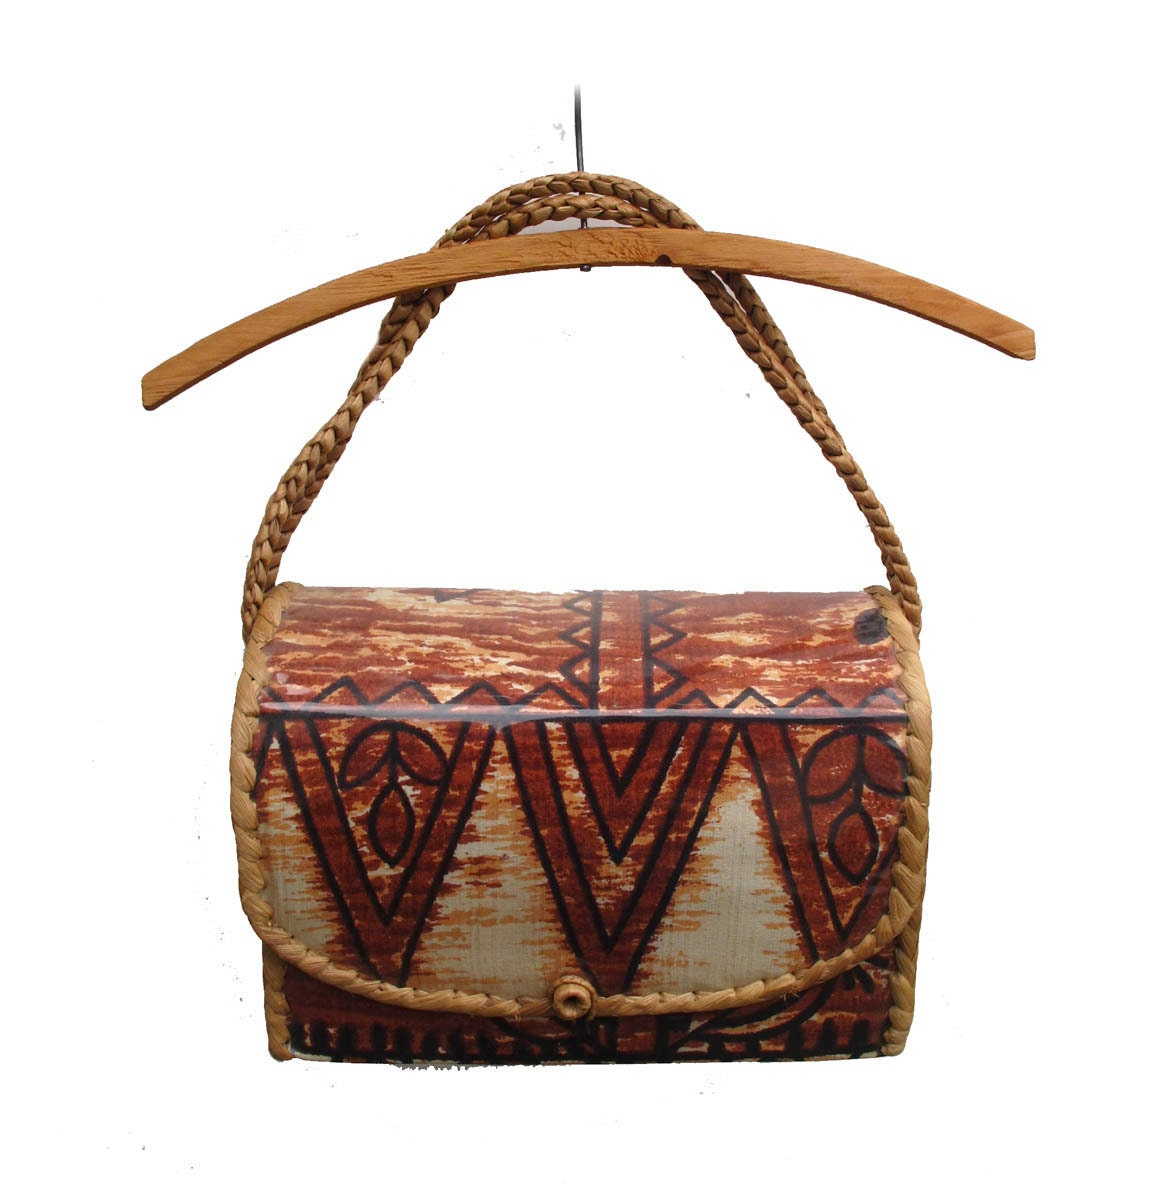 Woven Basket Purse : Vintage boho woven basket purse cloth and straw vinyl covered